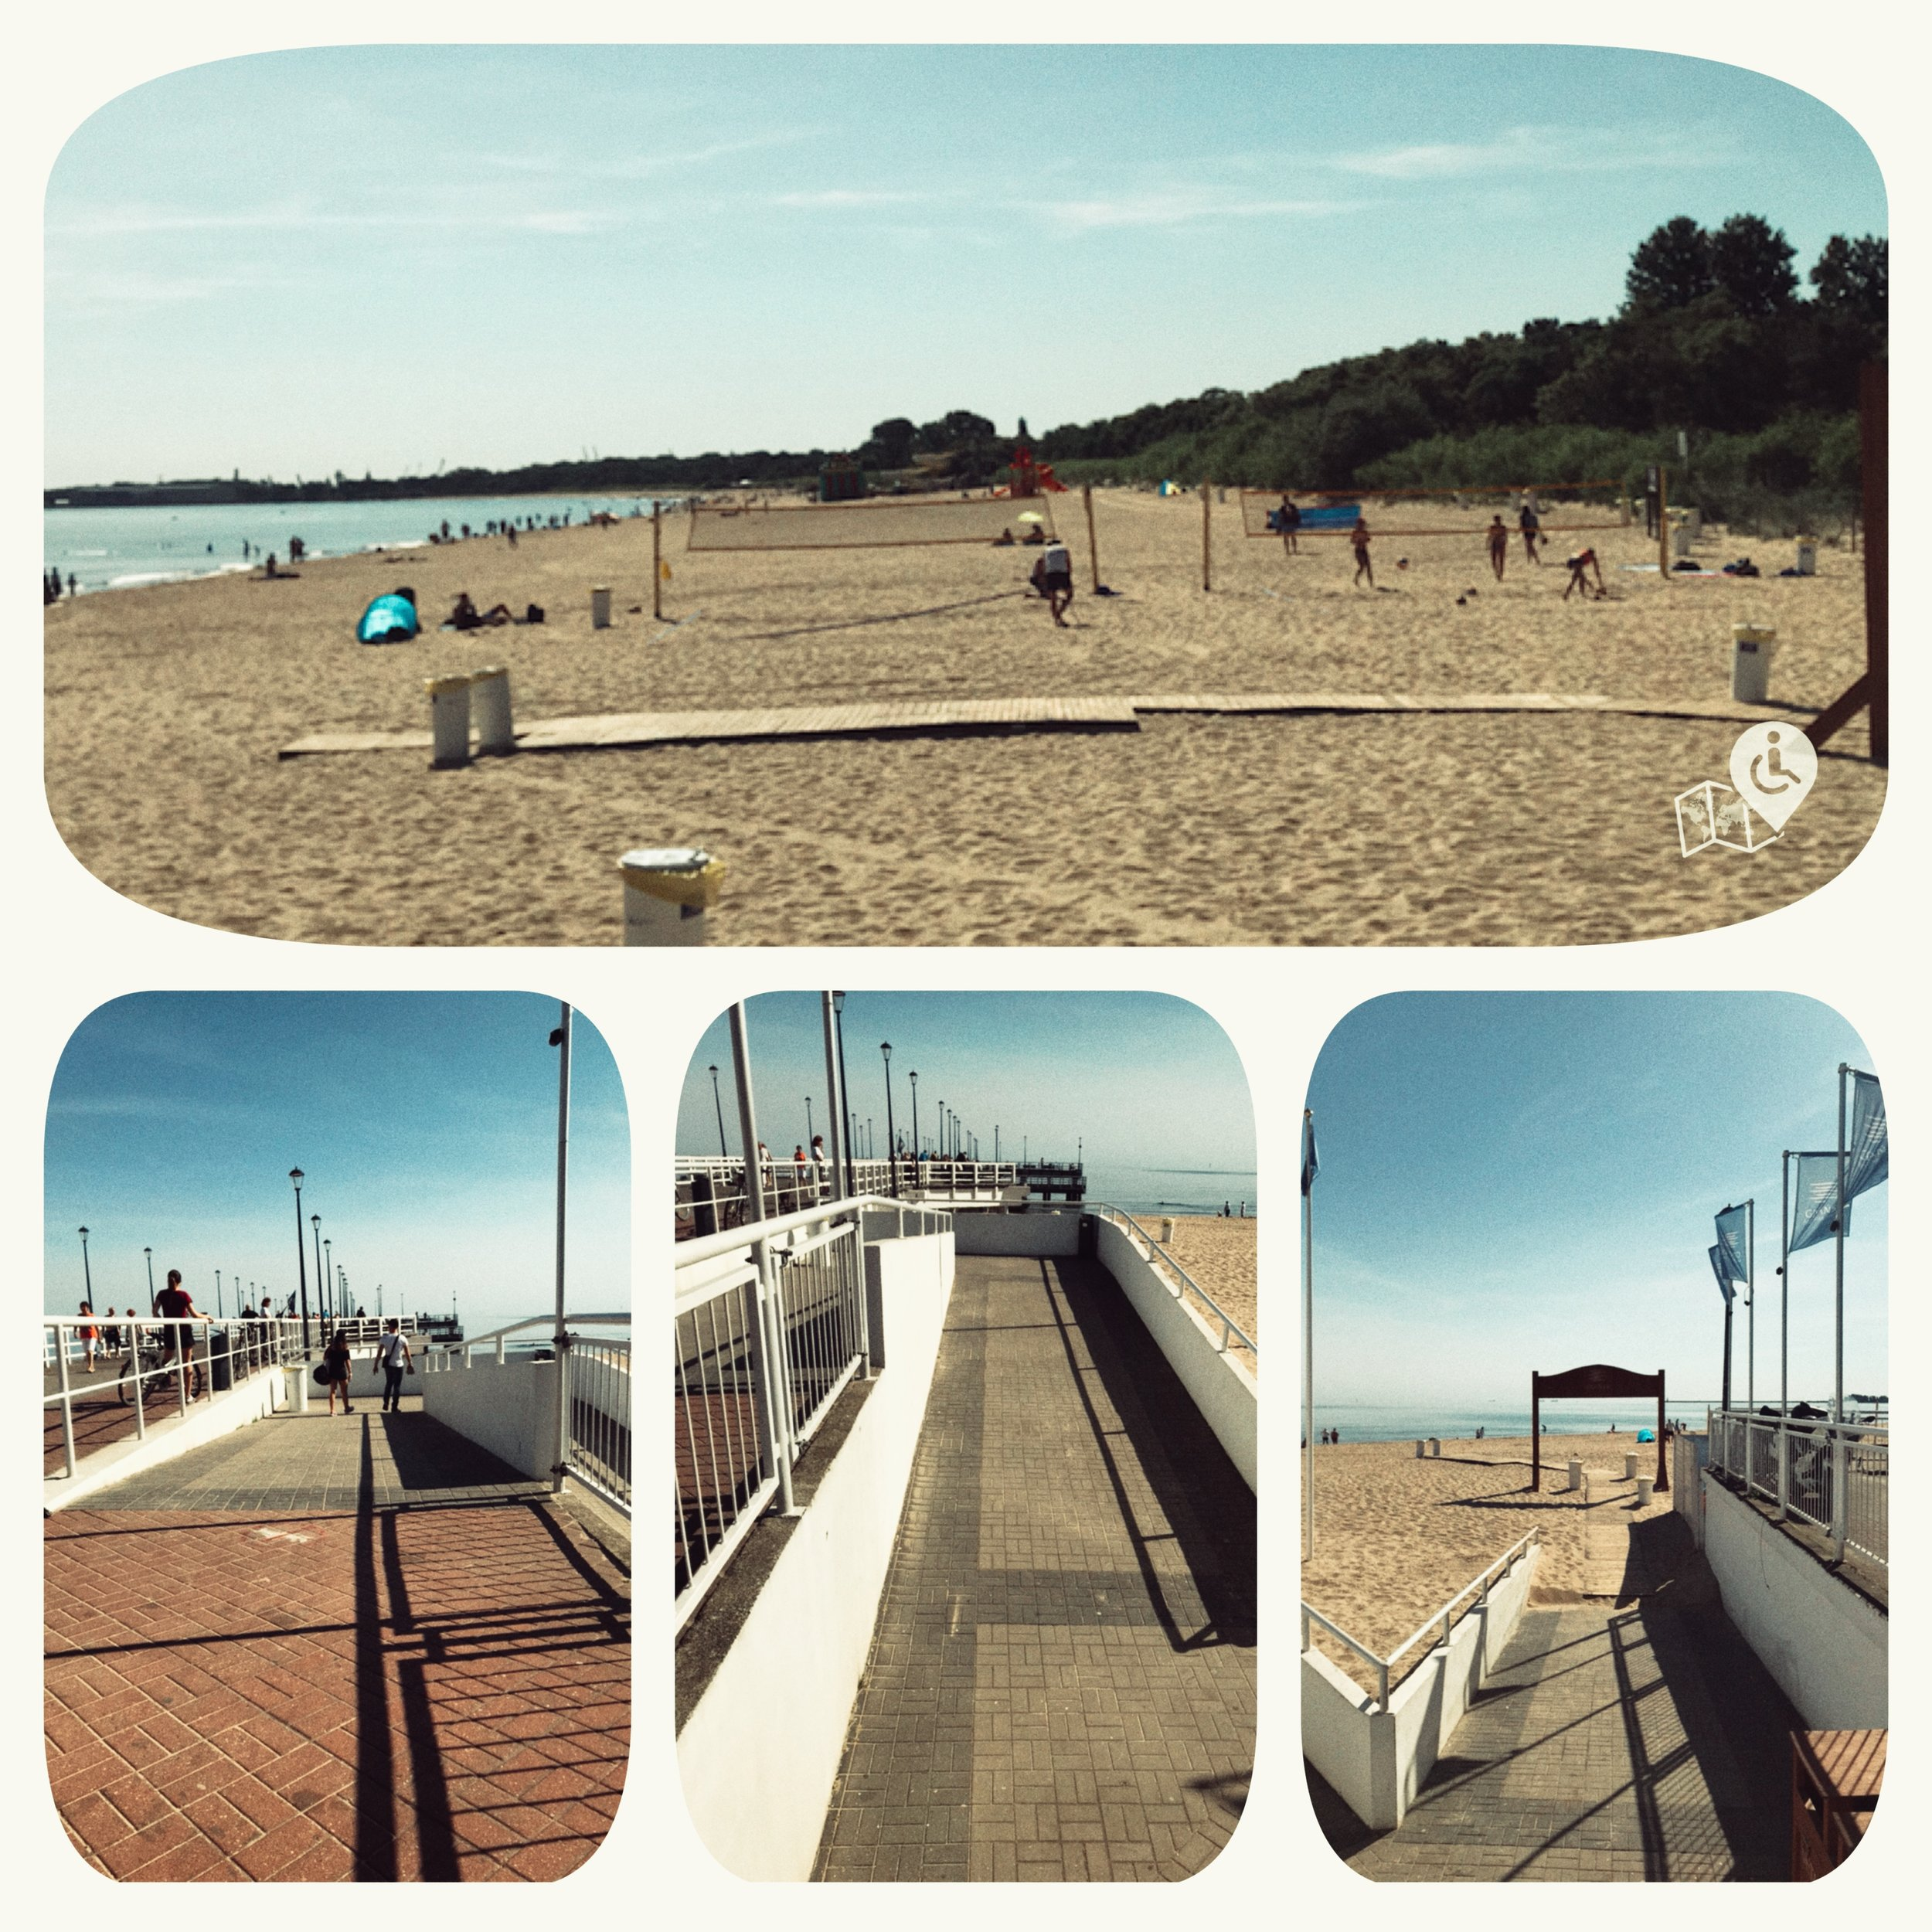 Brzezno Beach is fully accessible.